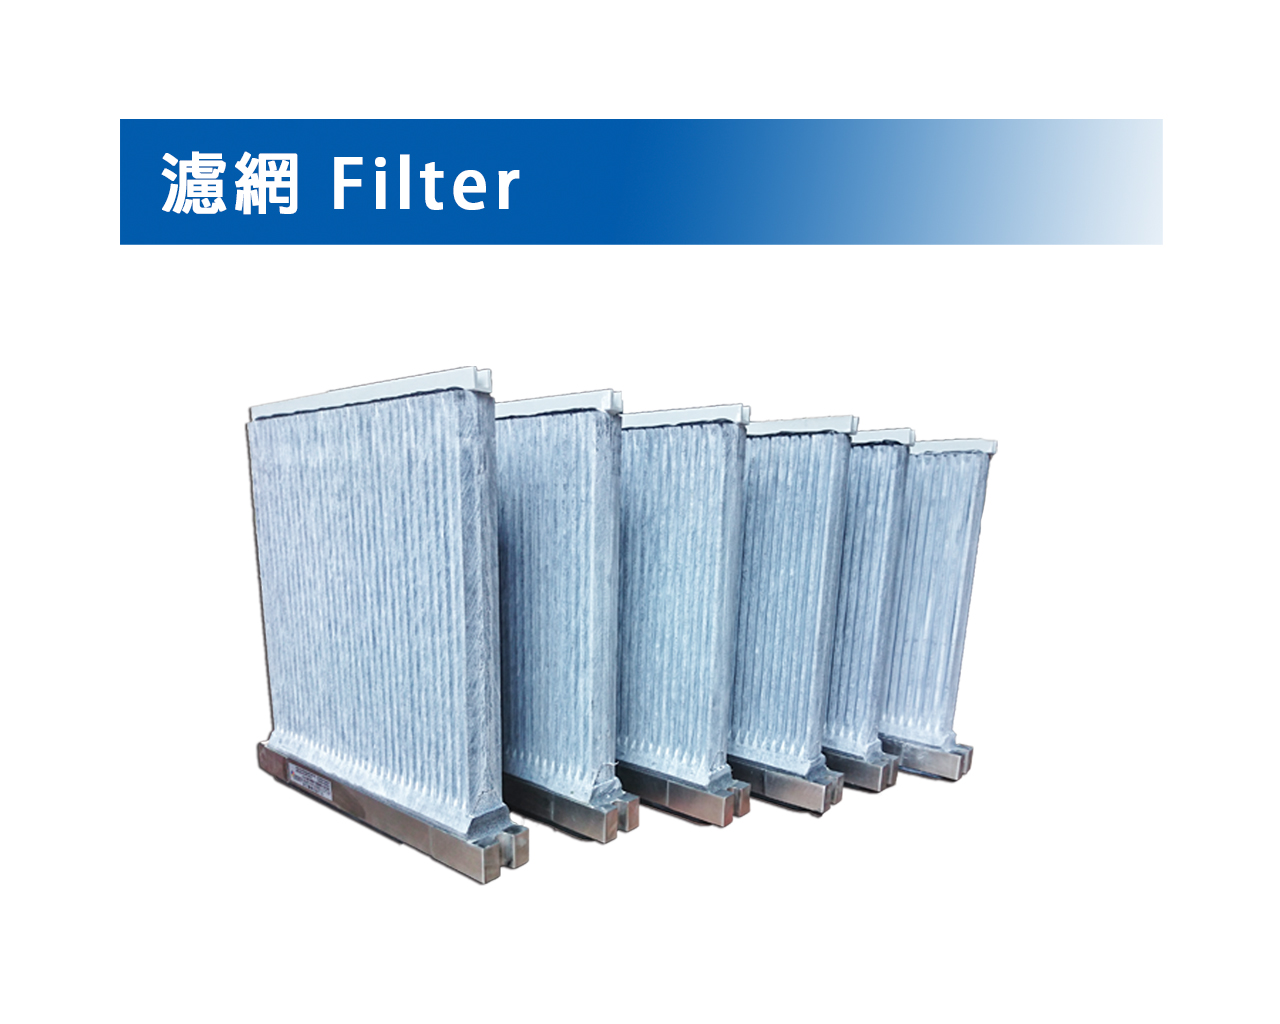 Filter [Made In Germany] (GR-EC)